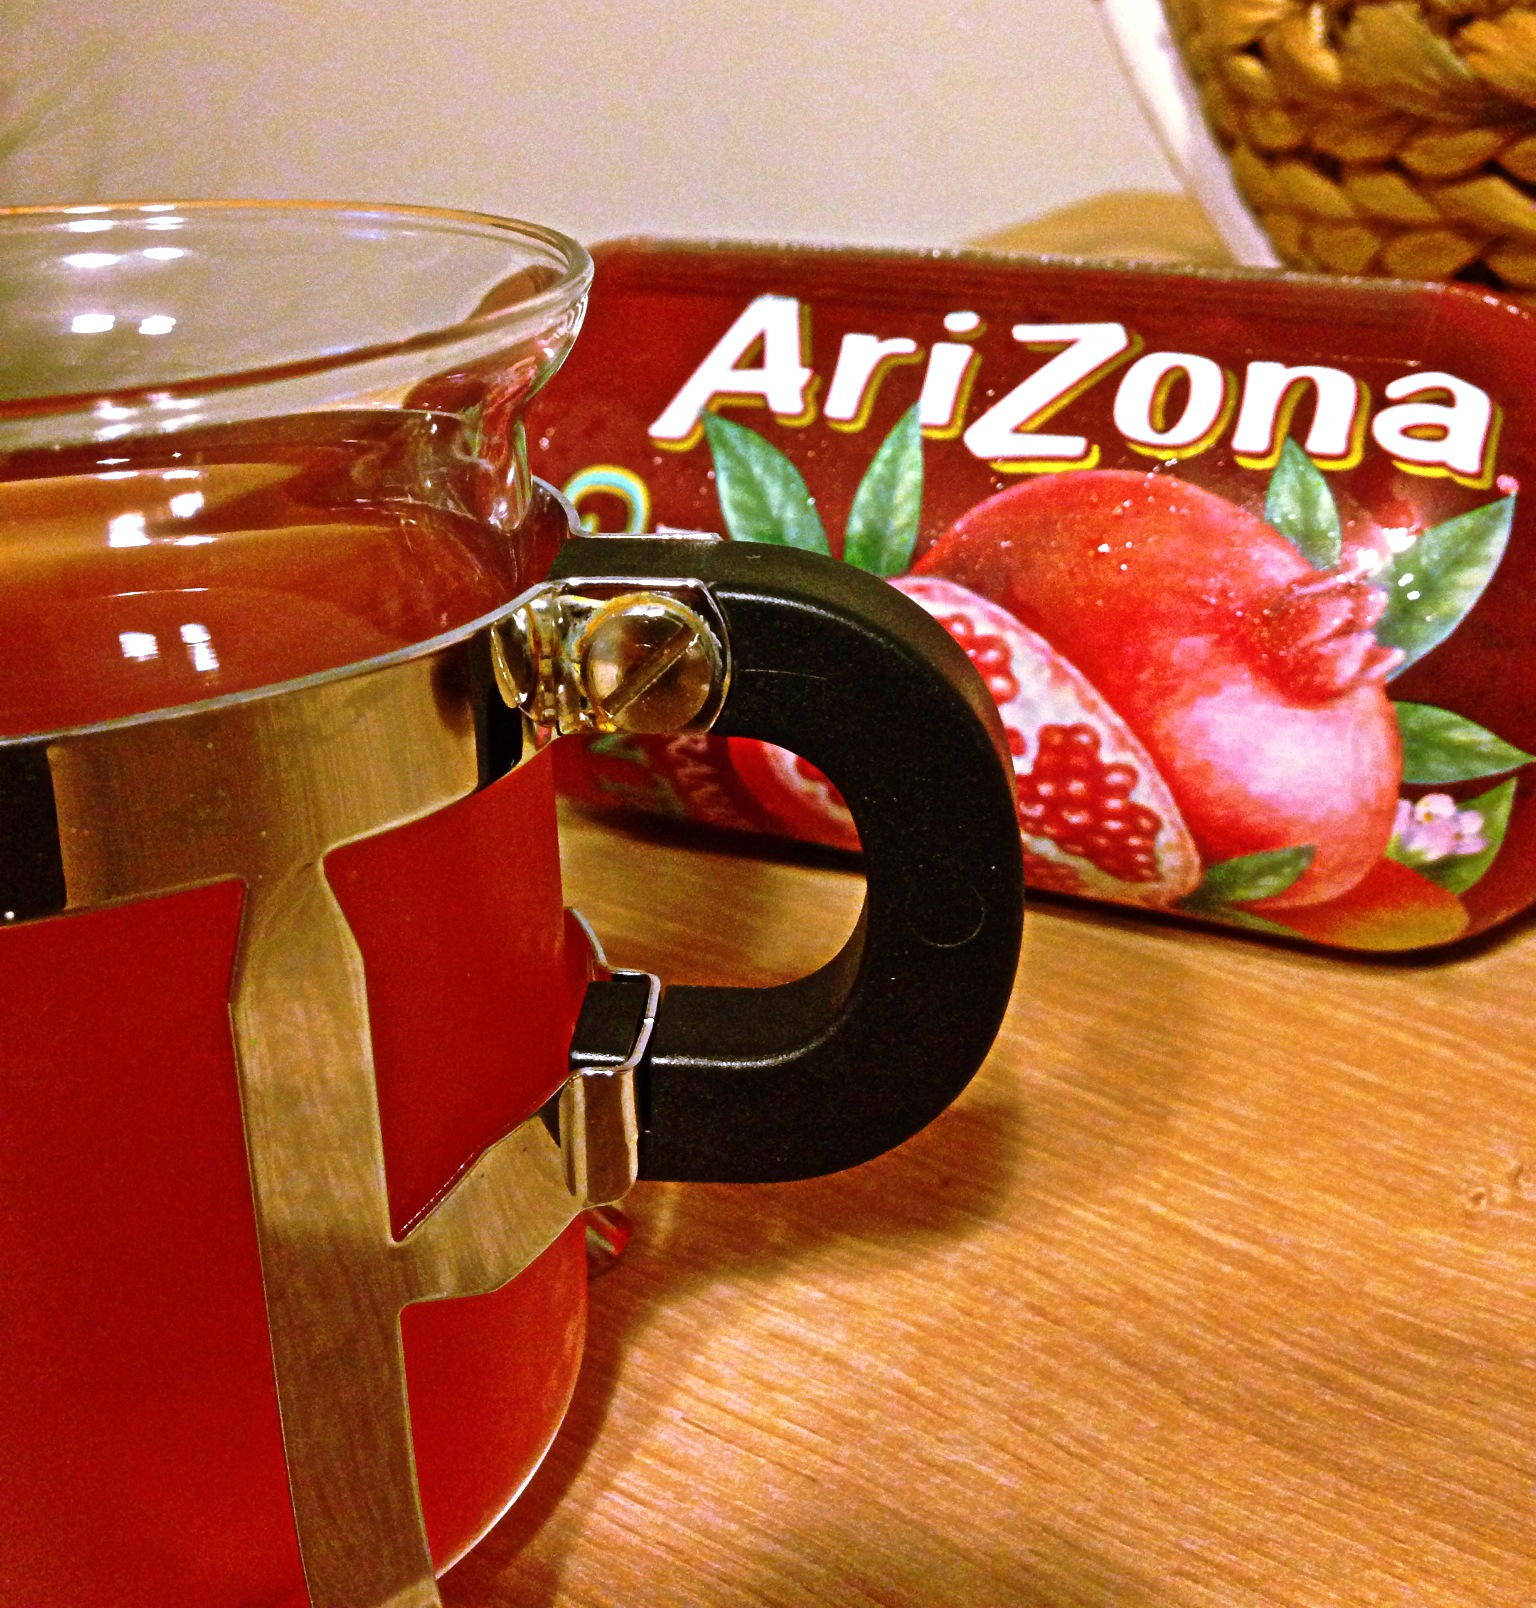 Arizona Pomegranate İced Tea